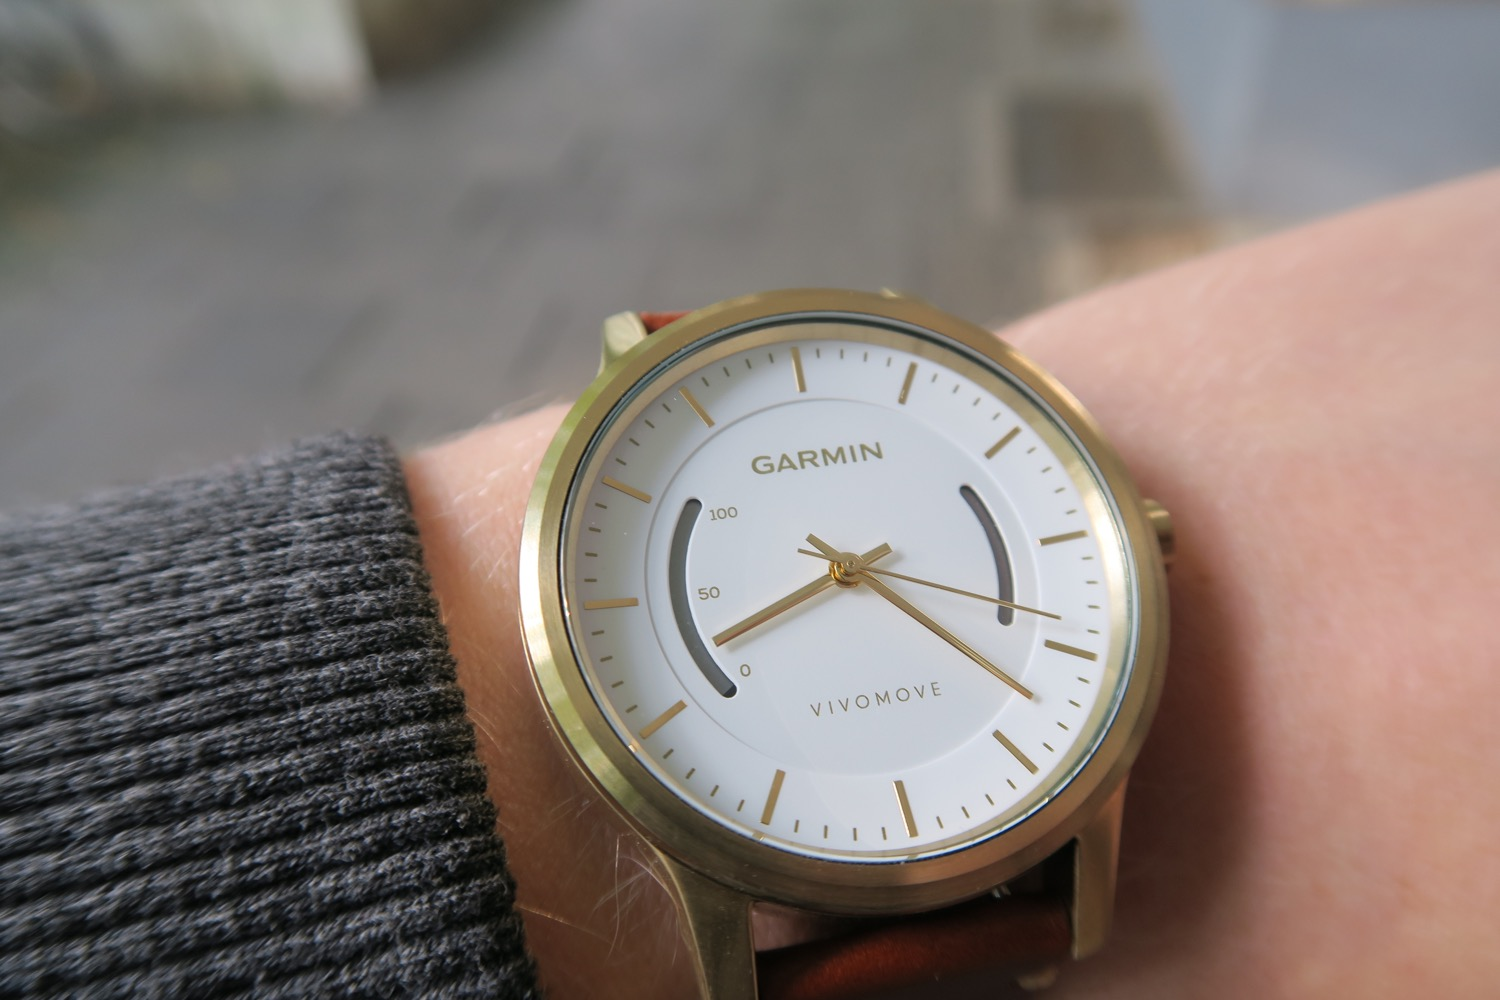 Garmin vivomove watch